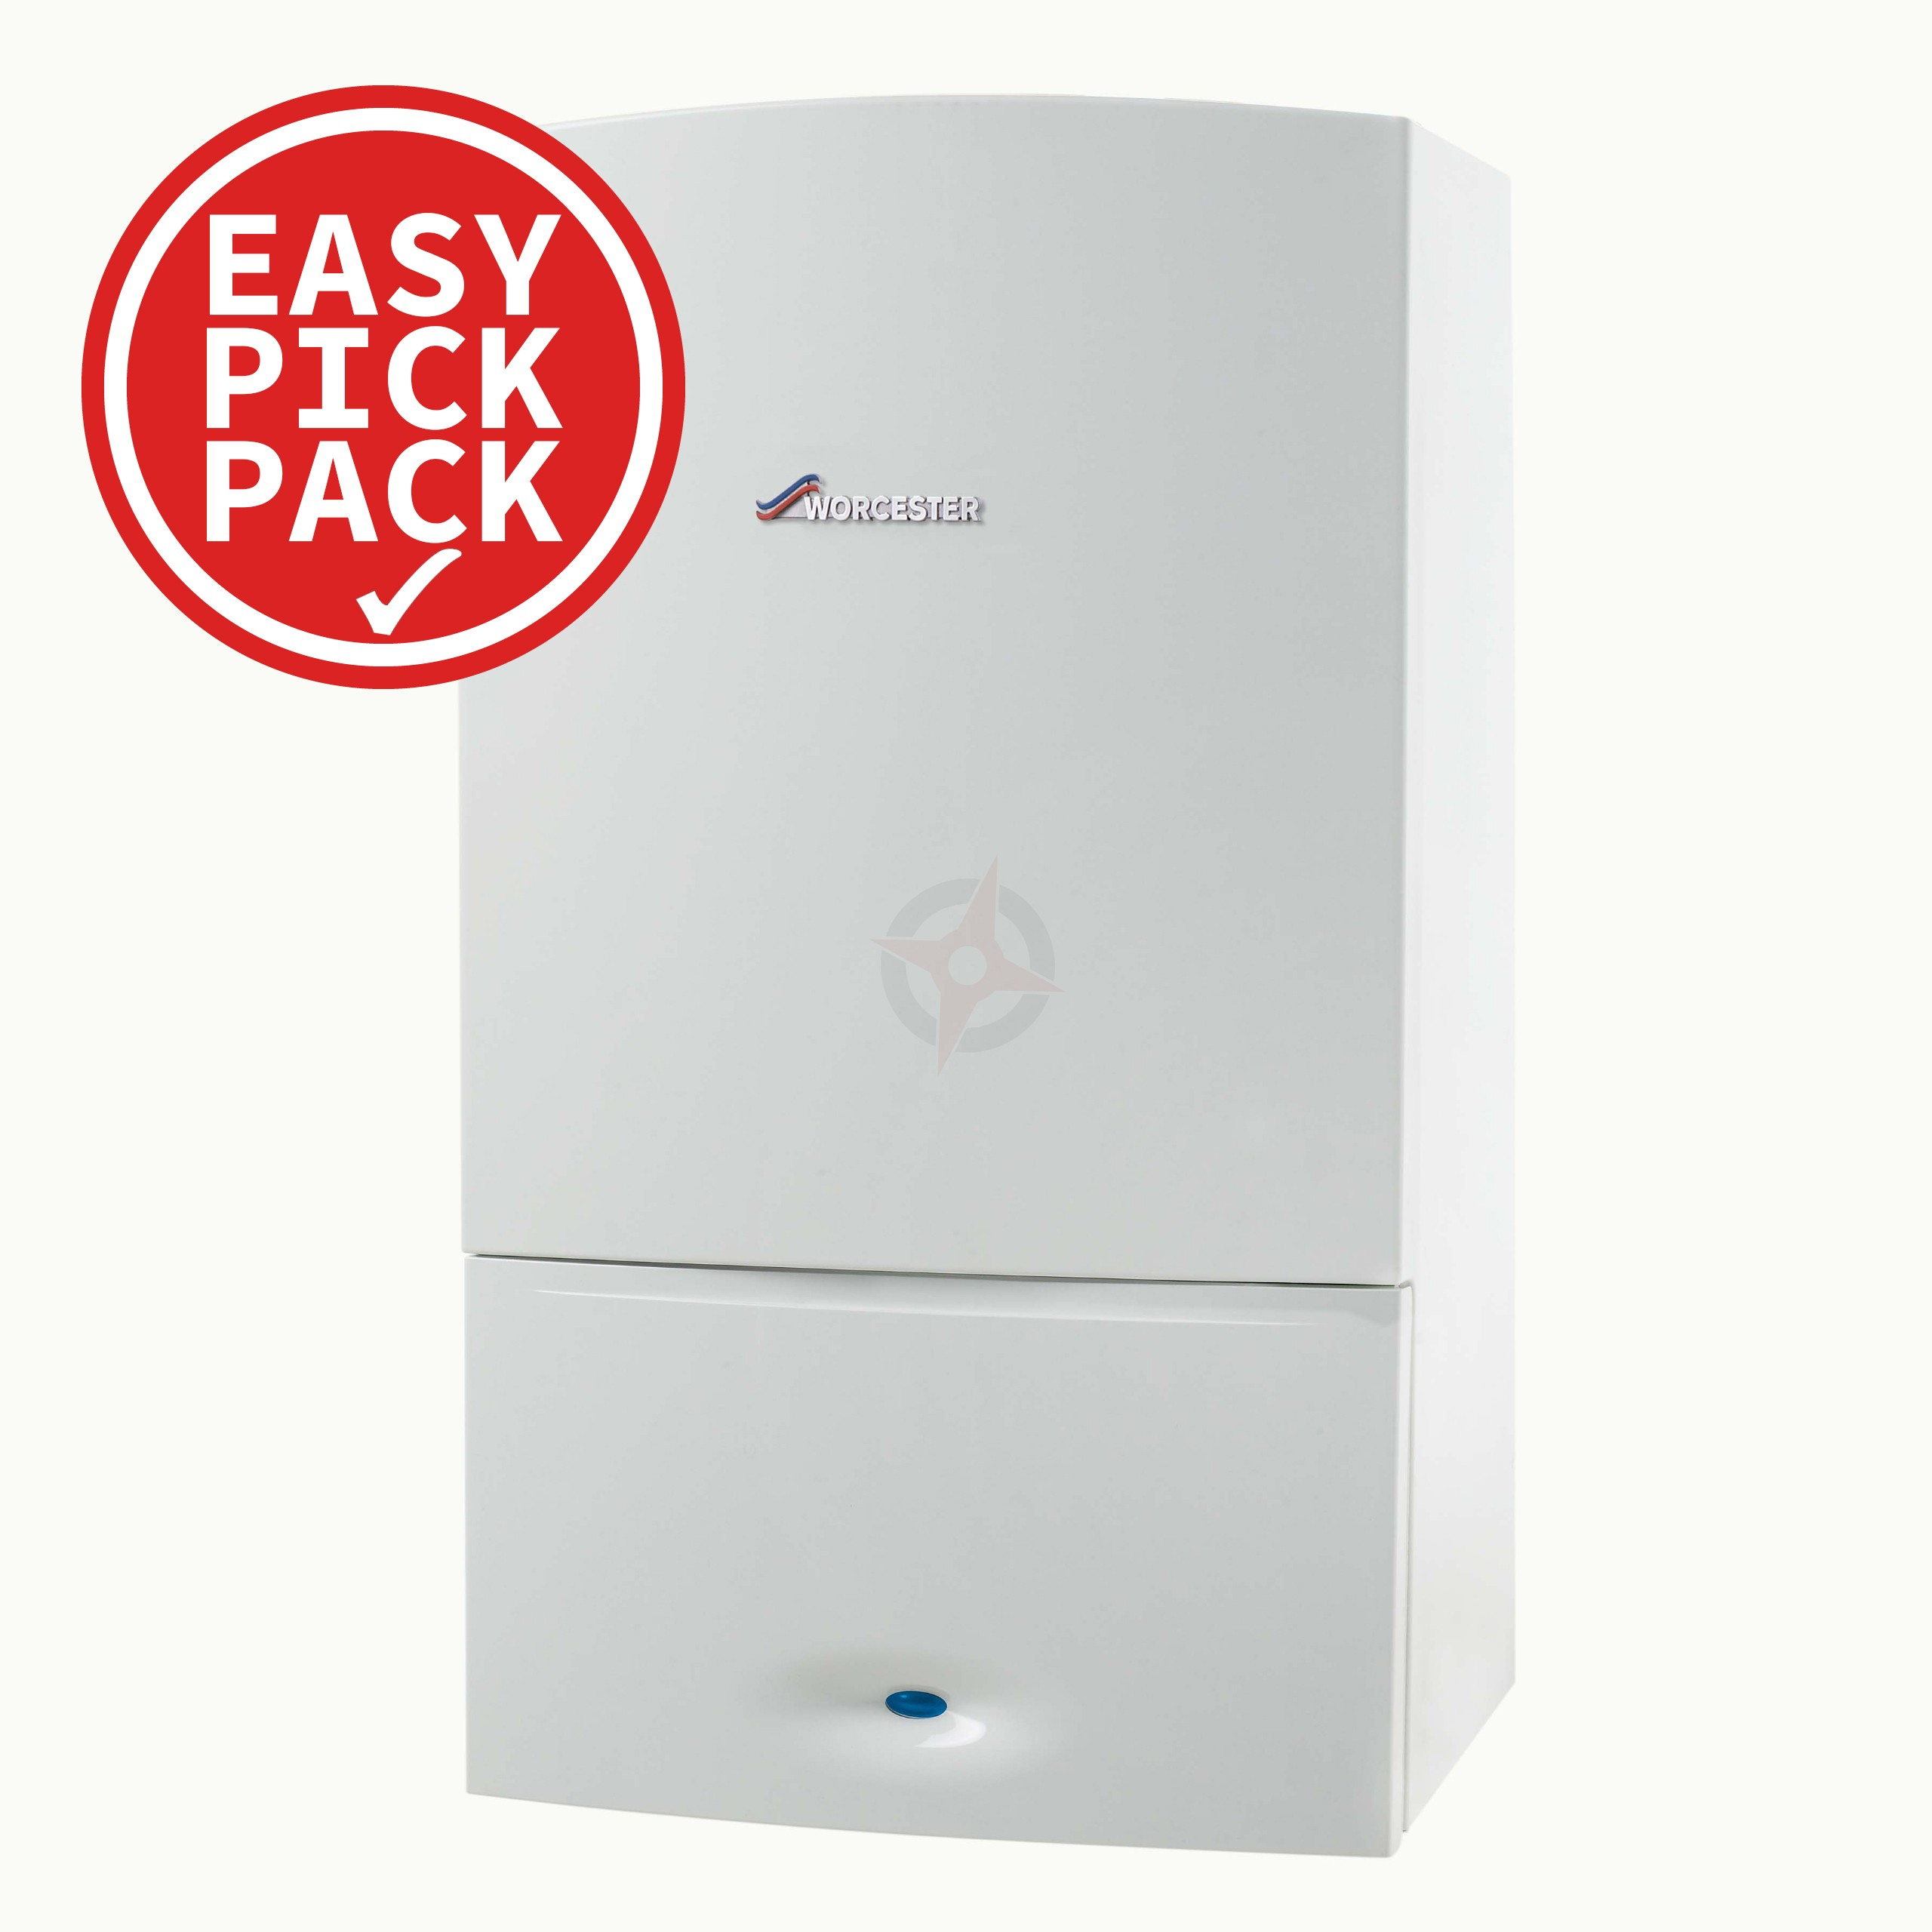 Worcester Greenstar 28CDI Compact (ErP) Combi Boiler Easy Pick Pack